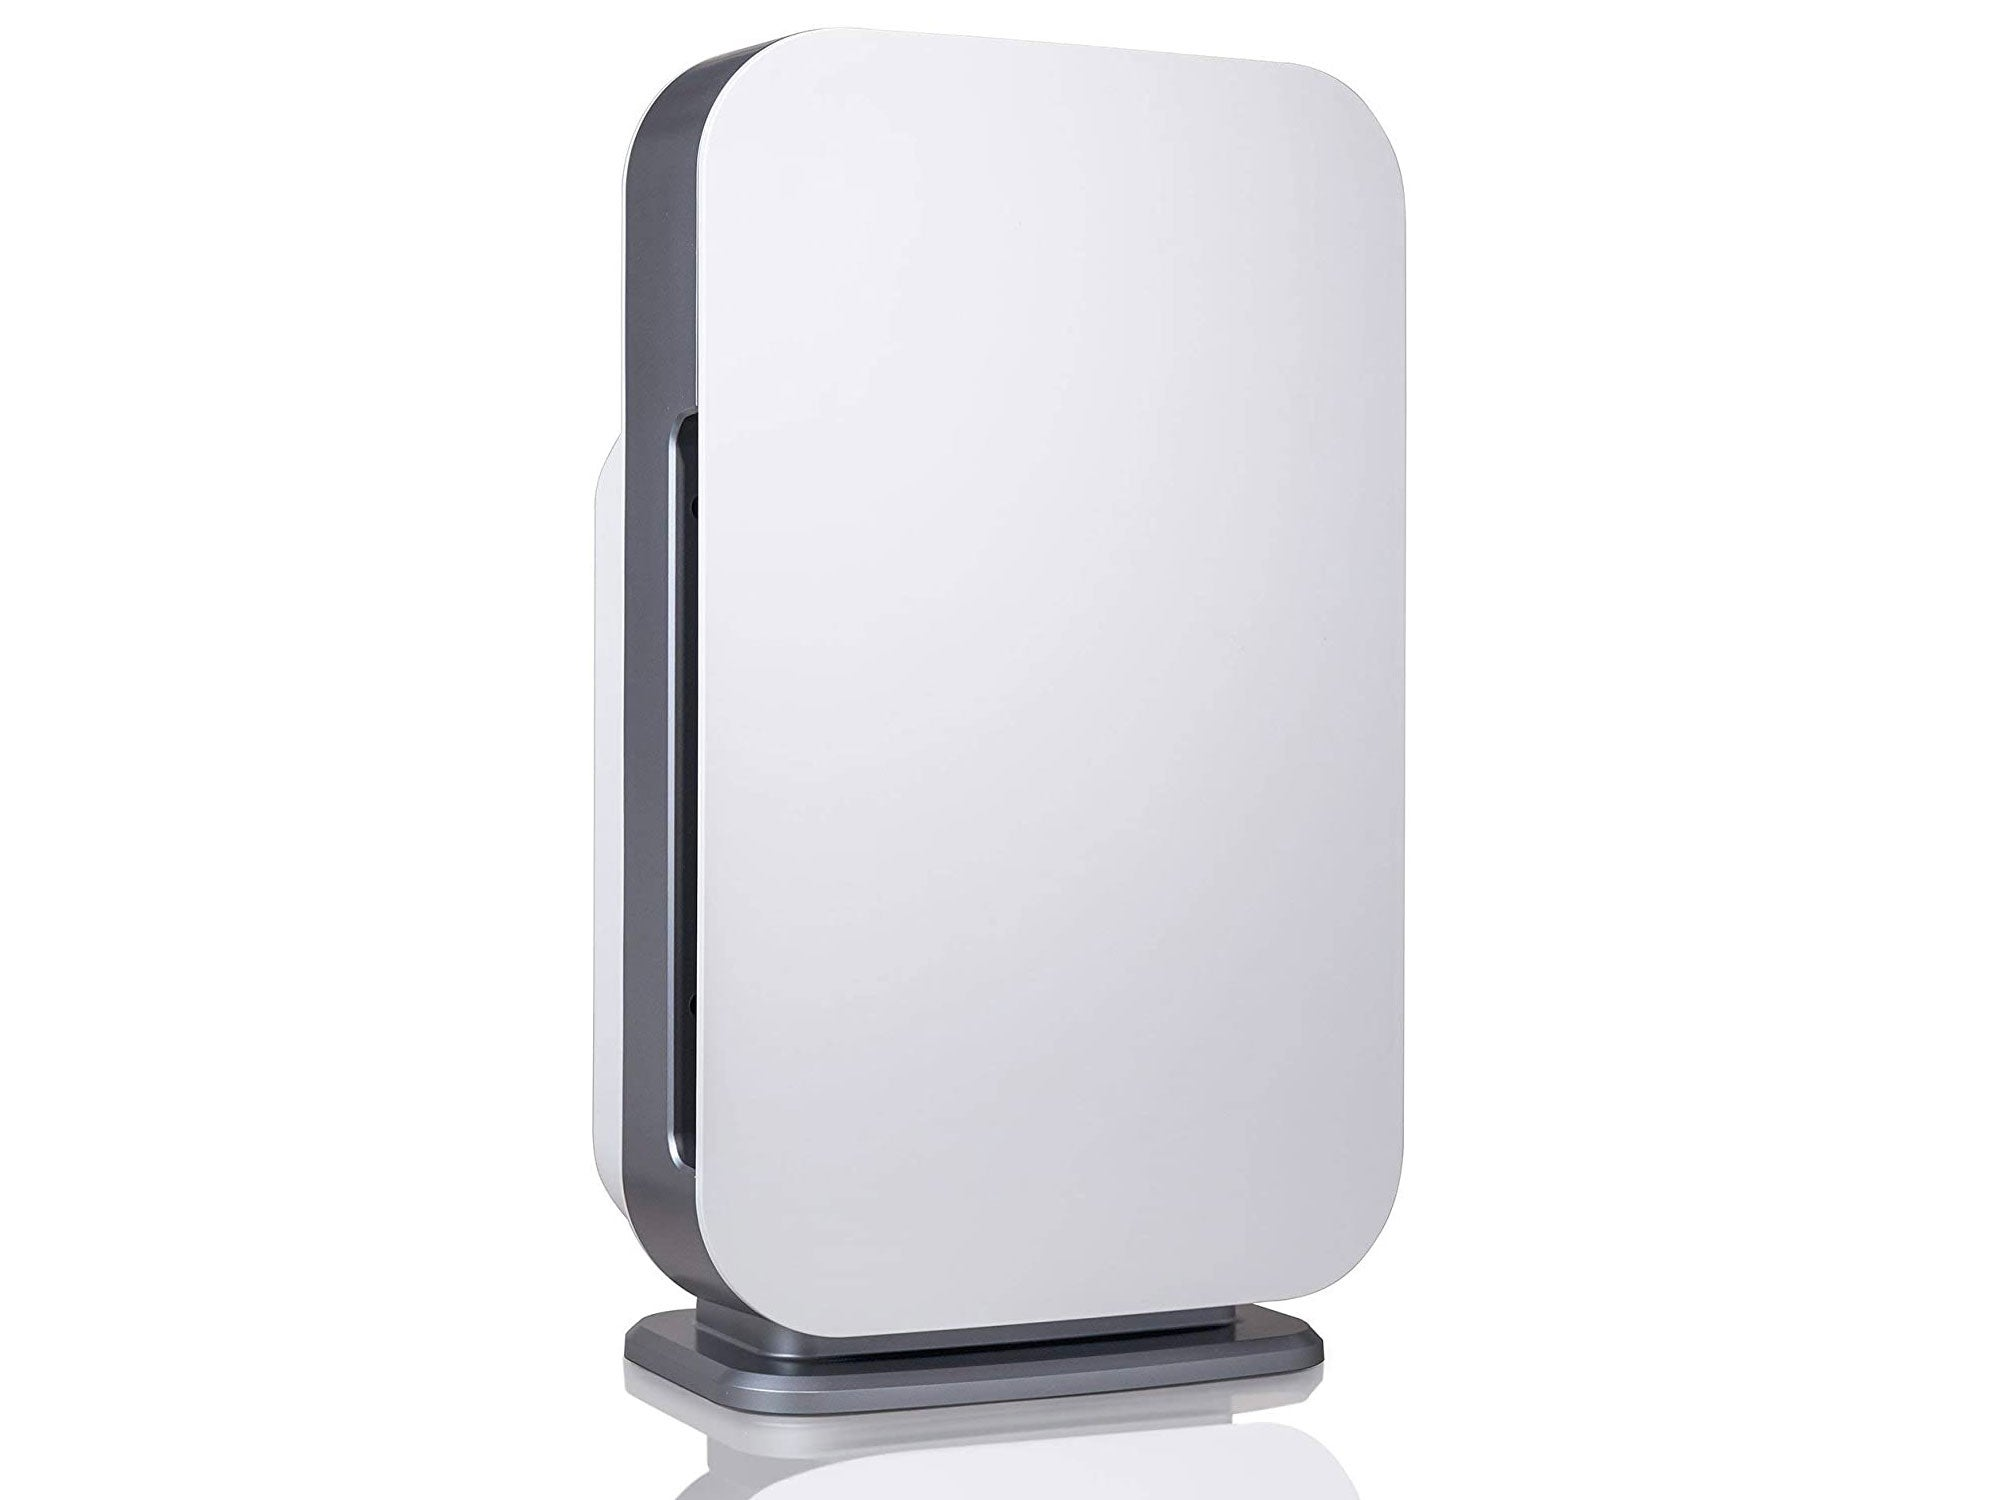 Alen BreatheSmart FLEX Air Purifier for Rooms up to 700 Sqft, H13 True HEPA, SleepScore Validated, Removes Allergens, Dust, Dander while Eliminates Bacteria, Germs, Mold, Odor from Smoke, in White